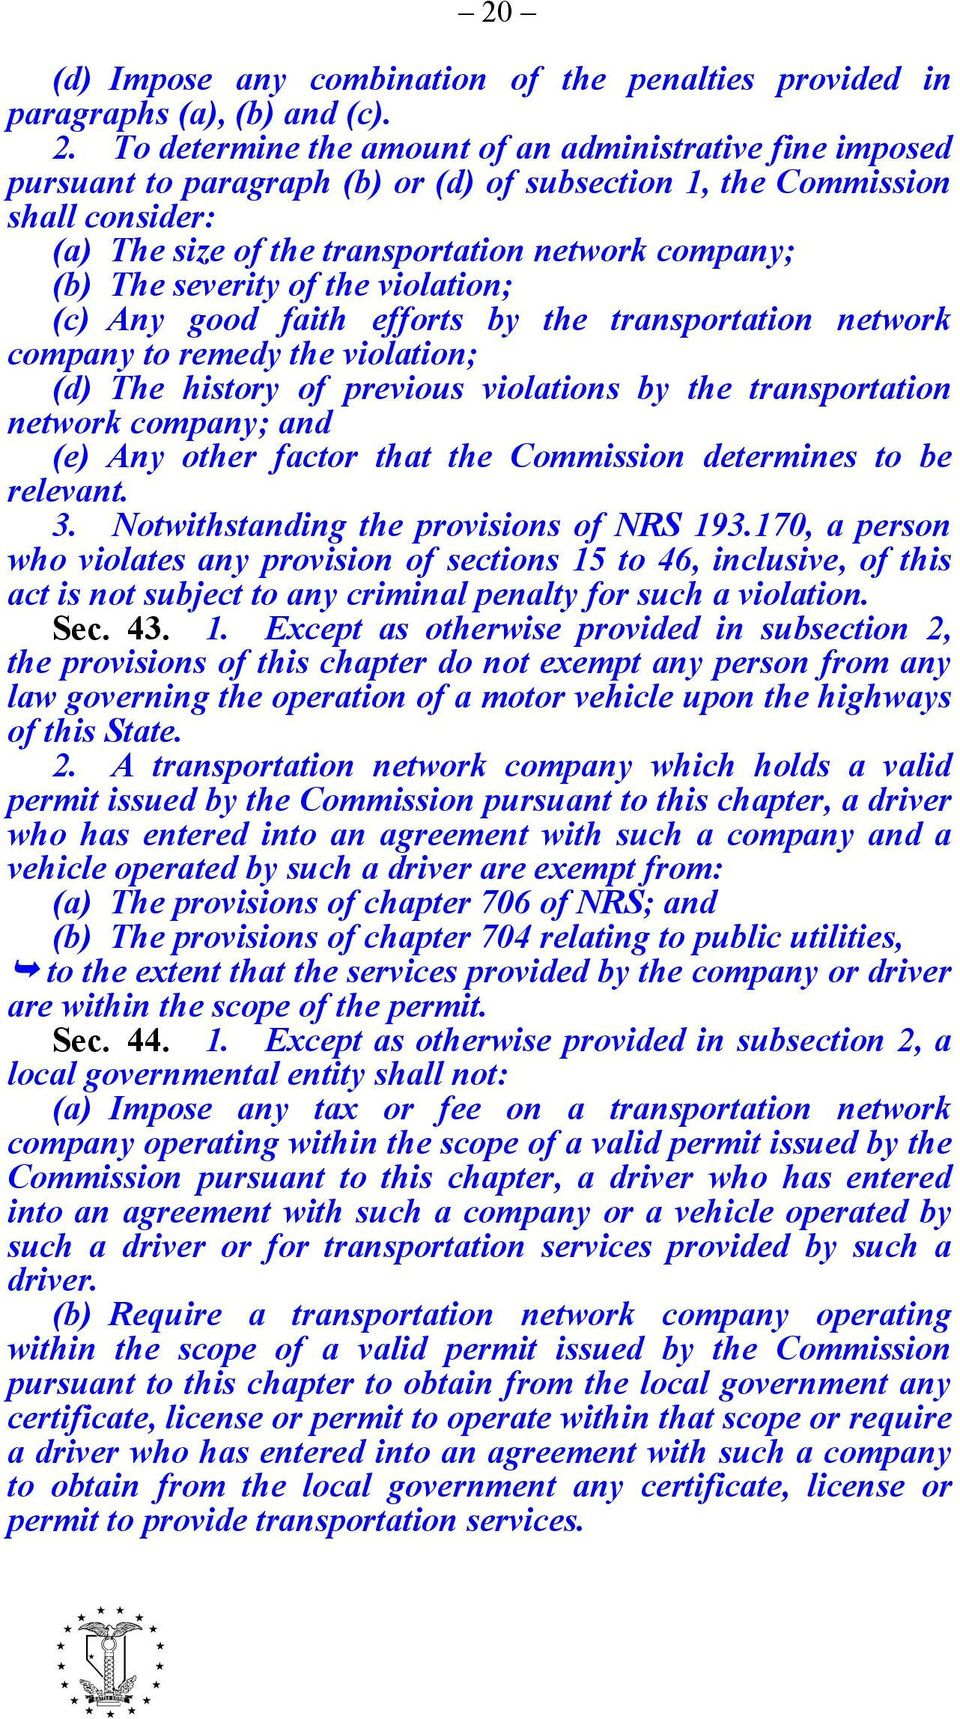 violation; (d) The history of previous violations by the transportation network company; and (e) Any other factor that the Commission determines to be relevant. 3.